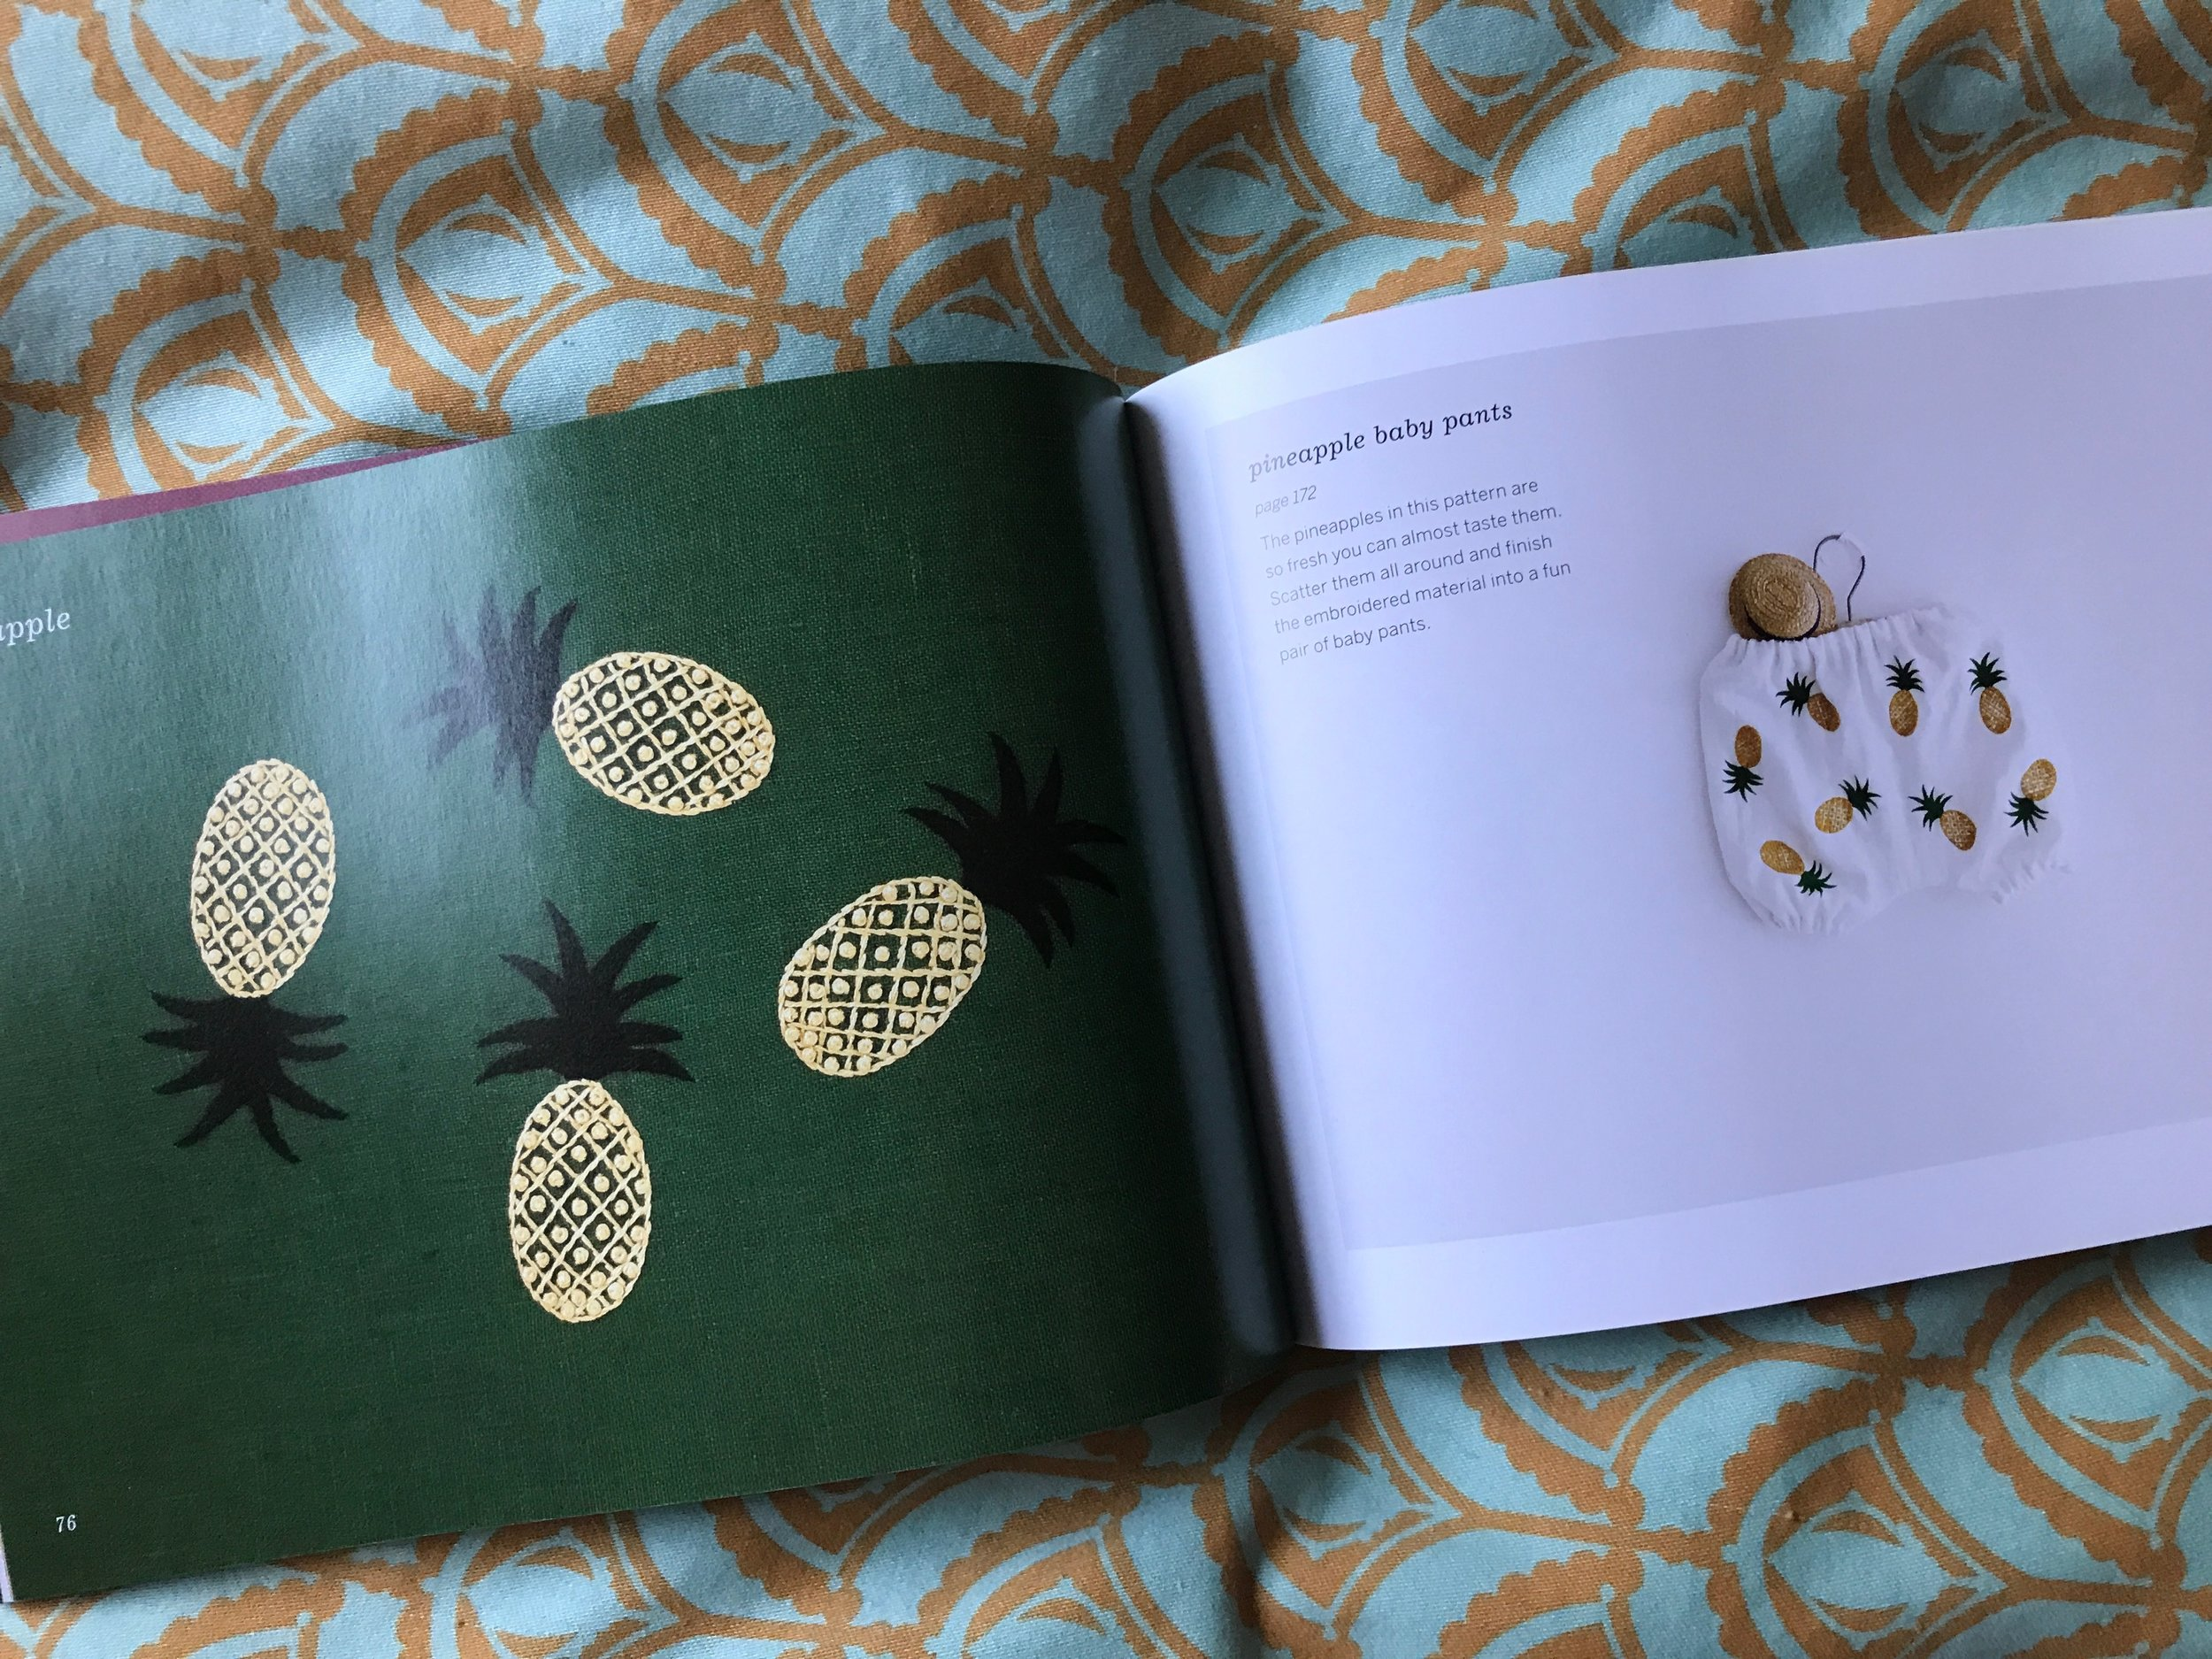 """Have you been seeing pineapples everywhere in home decor lately? The pineapple has long been seen as a traditional expression of """"welcome"""" in a home! A single pineapple in a small hoop would have big impact for a friend or entryway. Eight pineapples on a pair of baby bloomers is pretty sweet welcome to the world!"""